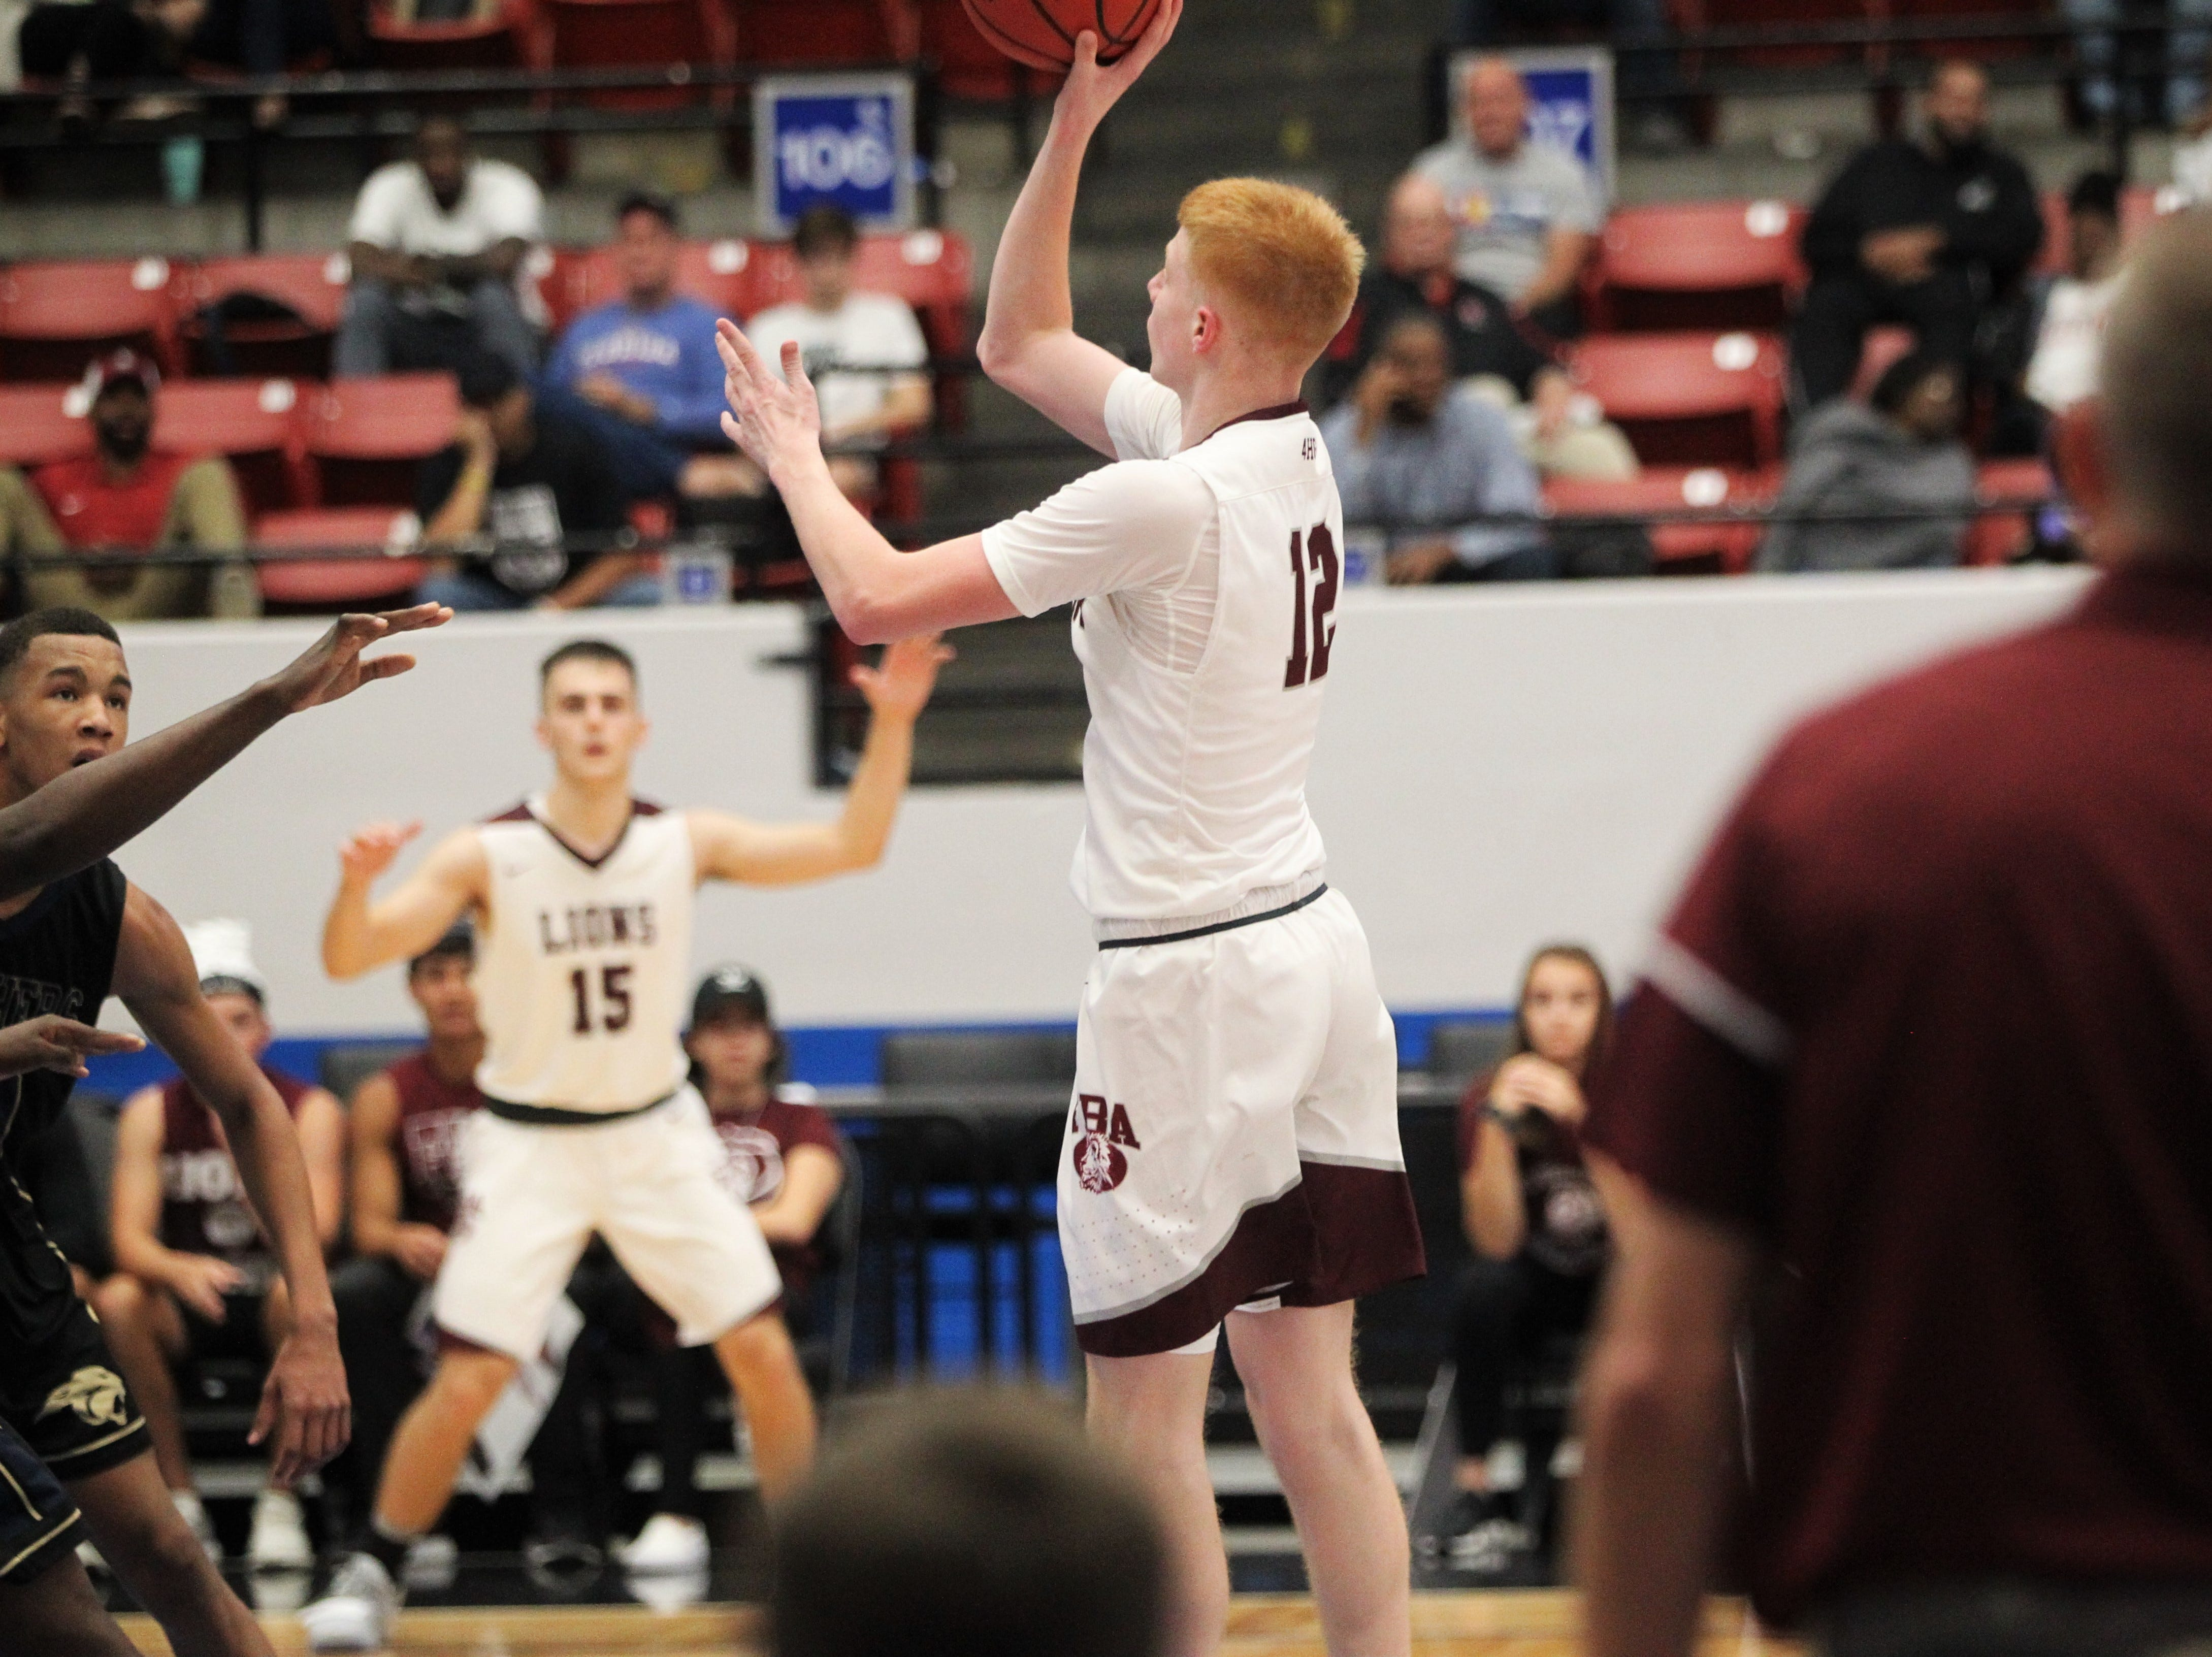 First Baptist Academy's Andrew Nottidge hits a mid-range jumper as St. John Paul II beat FBA 55-37 during a Class 3A state championship game at the RP Funding Center in Lakeland on March 4, 2019.